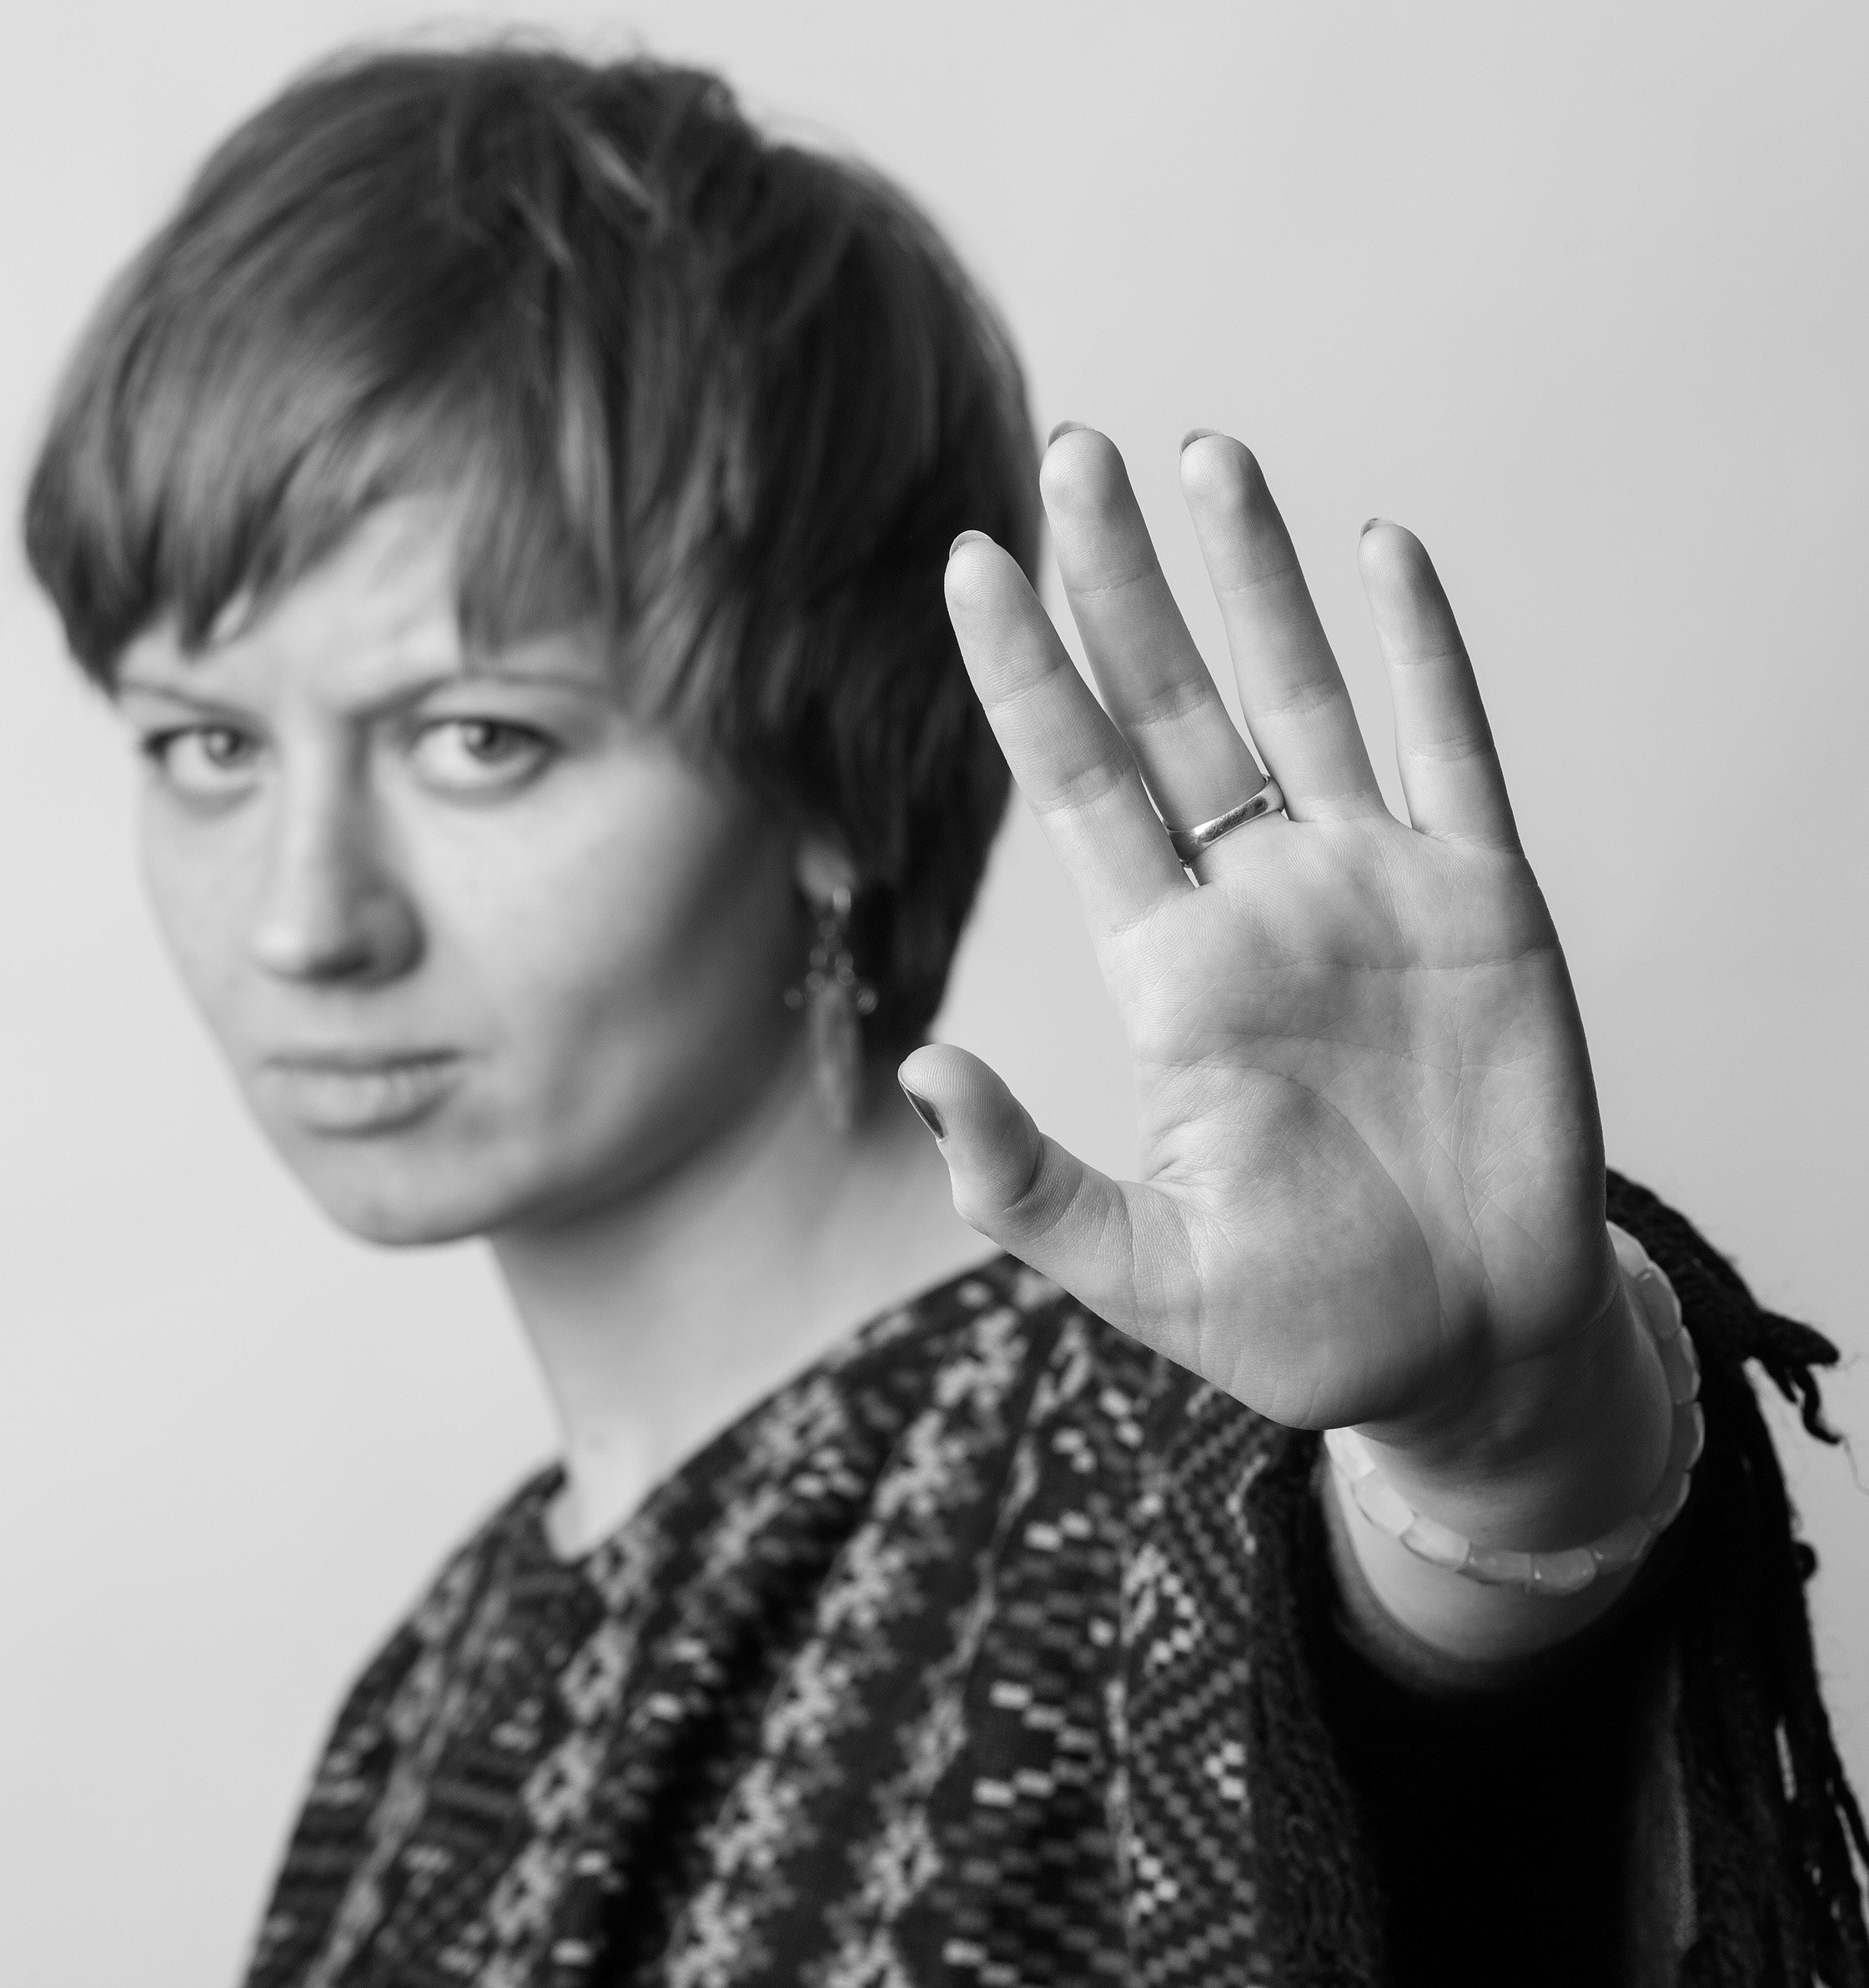 Das Foto Domestic violence - woman put the palm in front of herself von Slava Rutkovski zeigt eine Frau, die selbstbewusst und abwehrend mit der Hand Stop, bis hierher und nicht weiter! signalisiert.